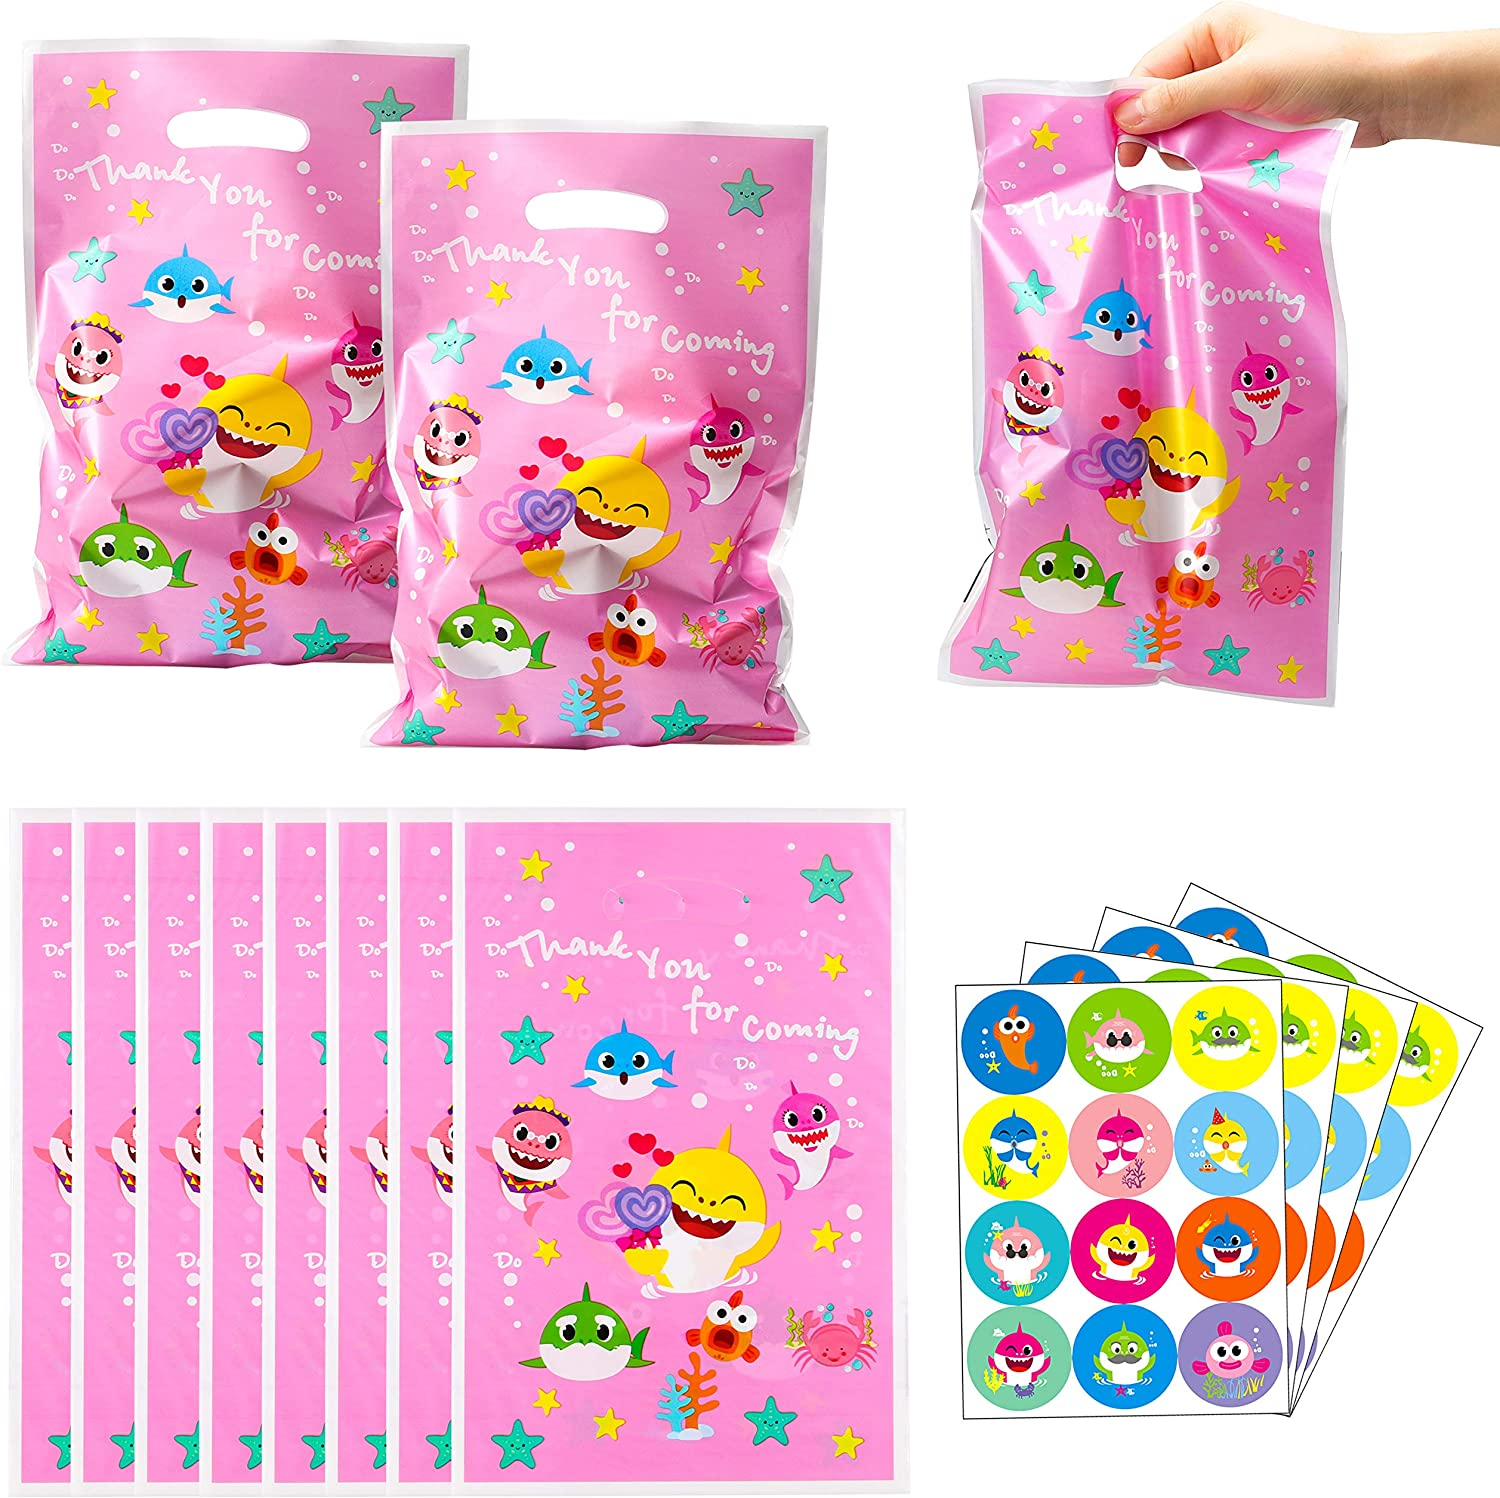 Ticiaga Cartoon Shark Party Favors, 50pcs Pink Little Shark Plastic Bag with 4pcs Shark Stickers, Goodies Candy Treat Bags for Kids, Cute Shark Theme Birthday Party Supplies, Birthday Decoration Bags